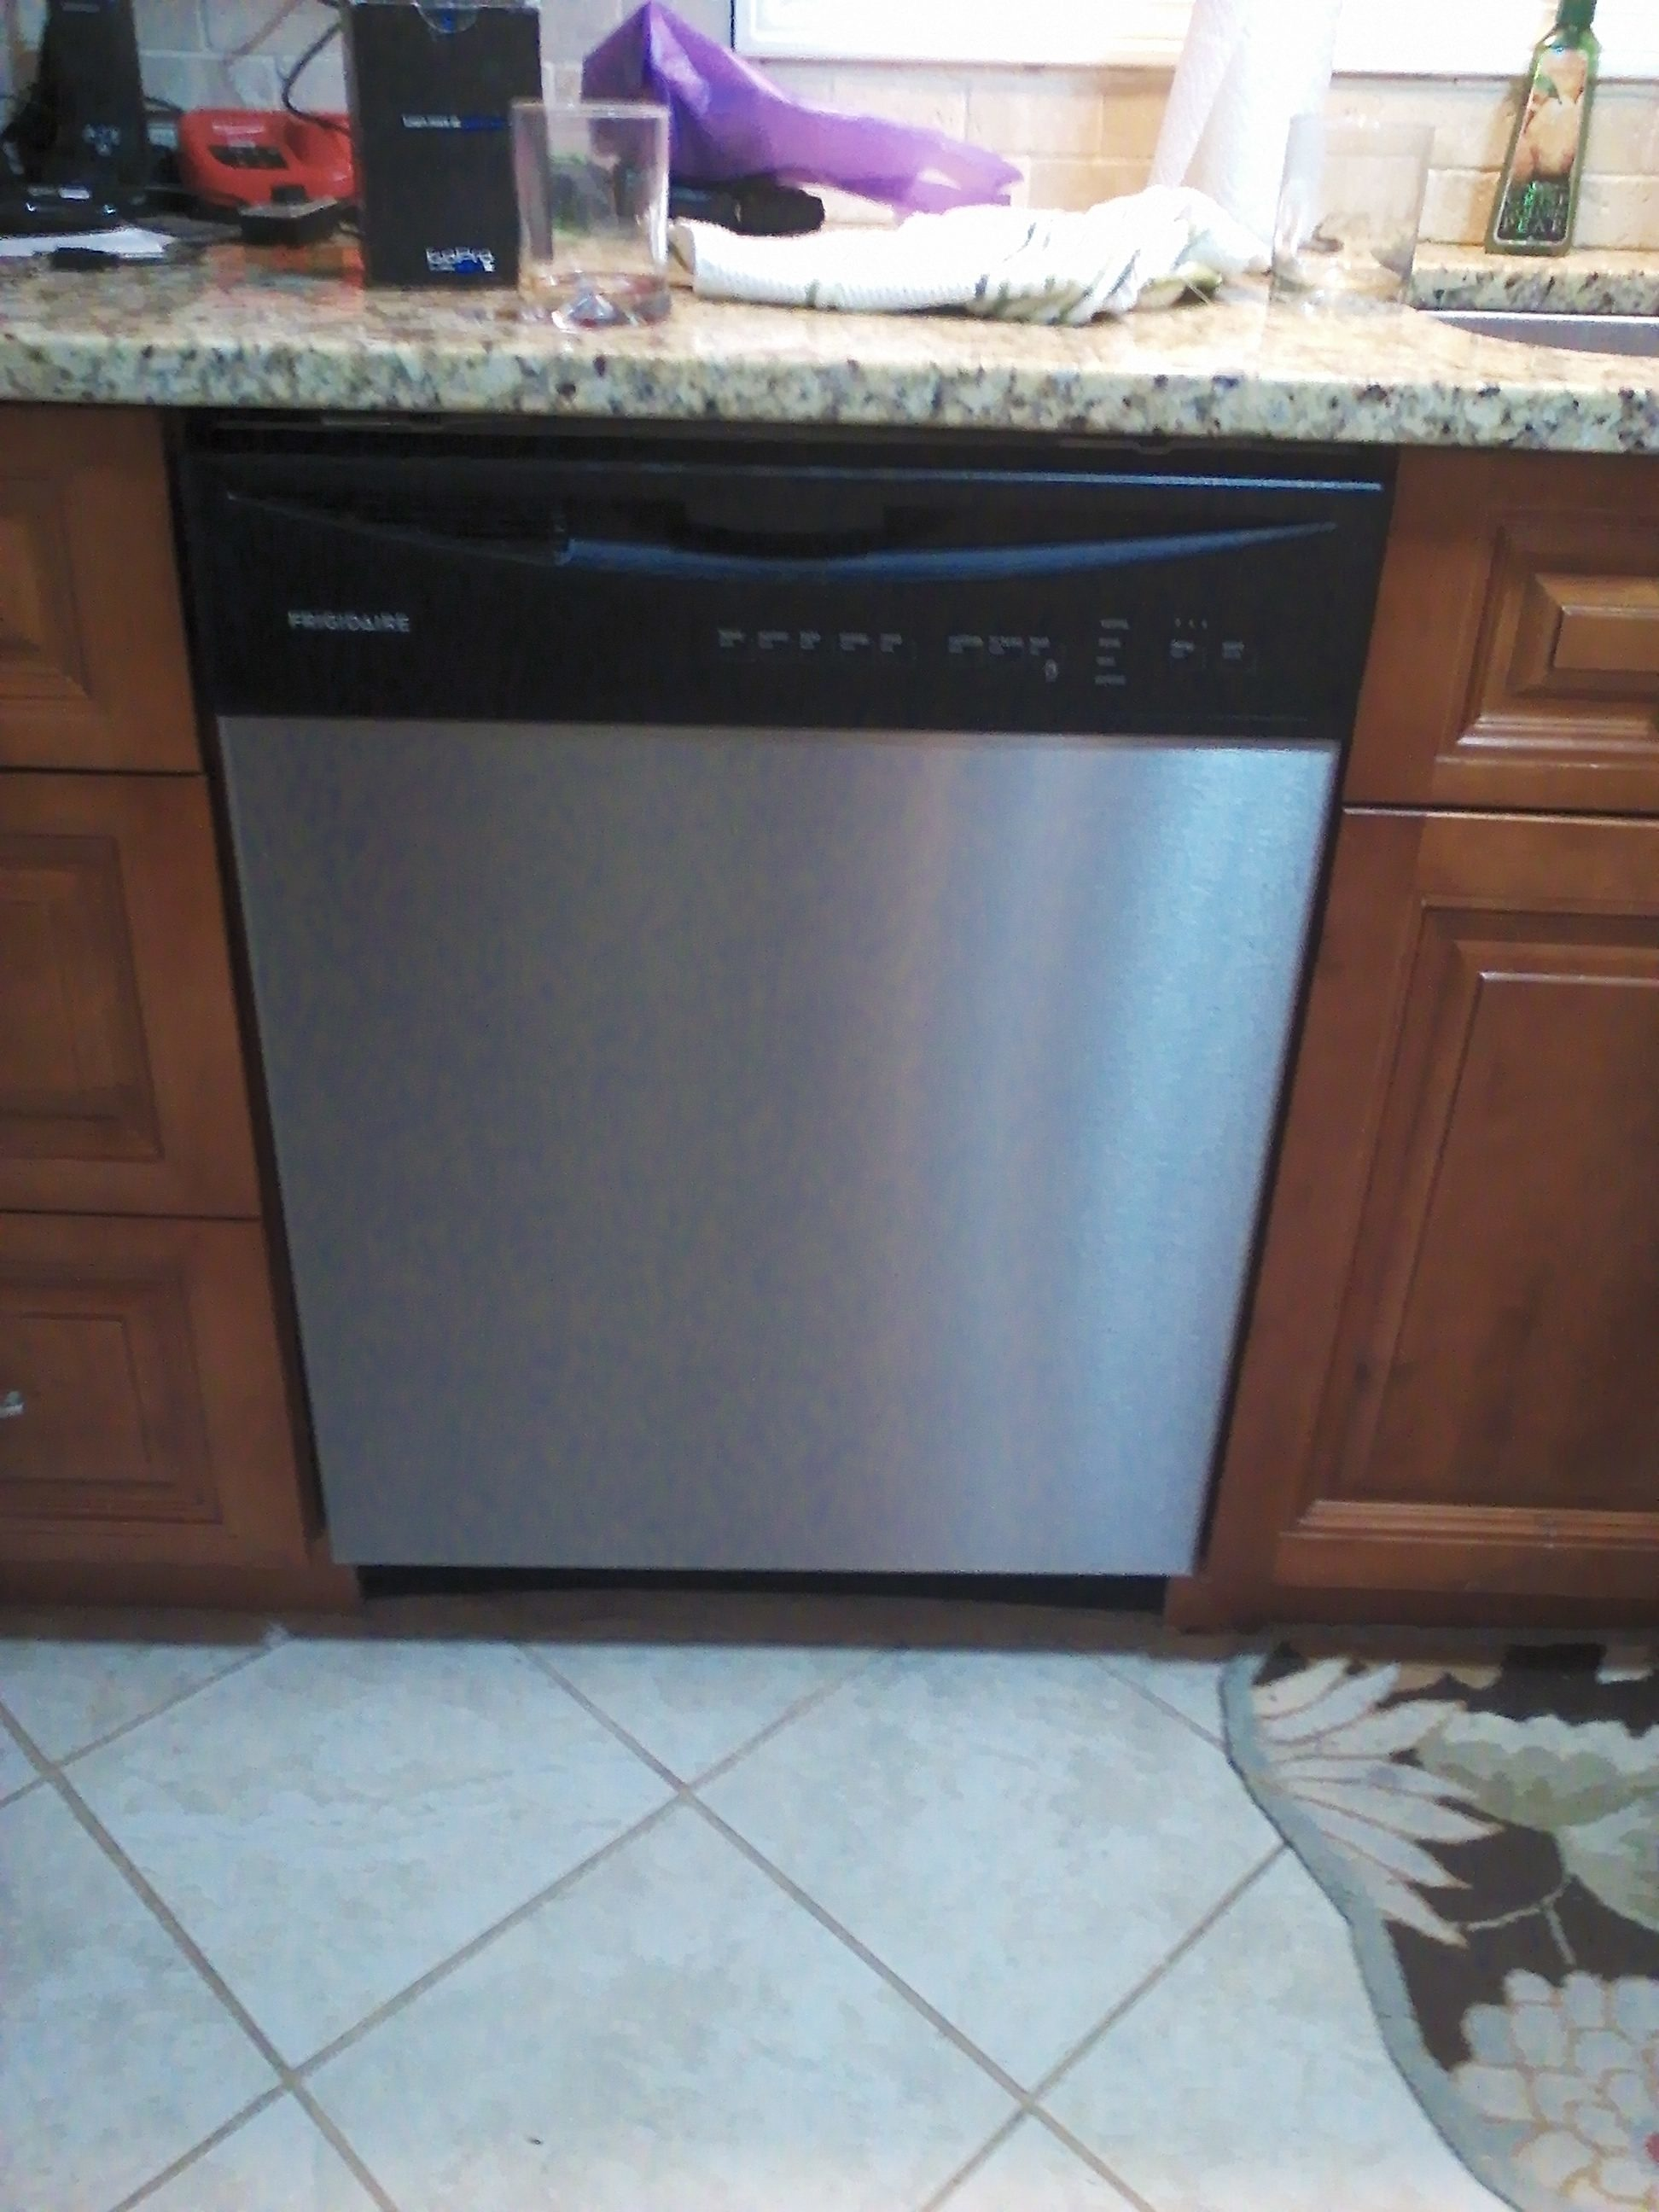 Dishwasher Purchase And Installation Top 323 Reviews And Complaints About Frigidaire Dishwashers Page 2